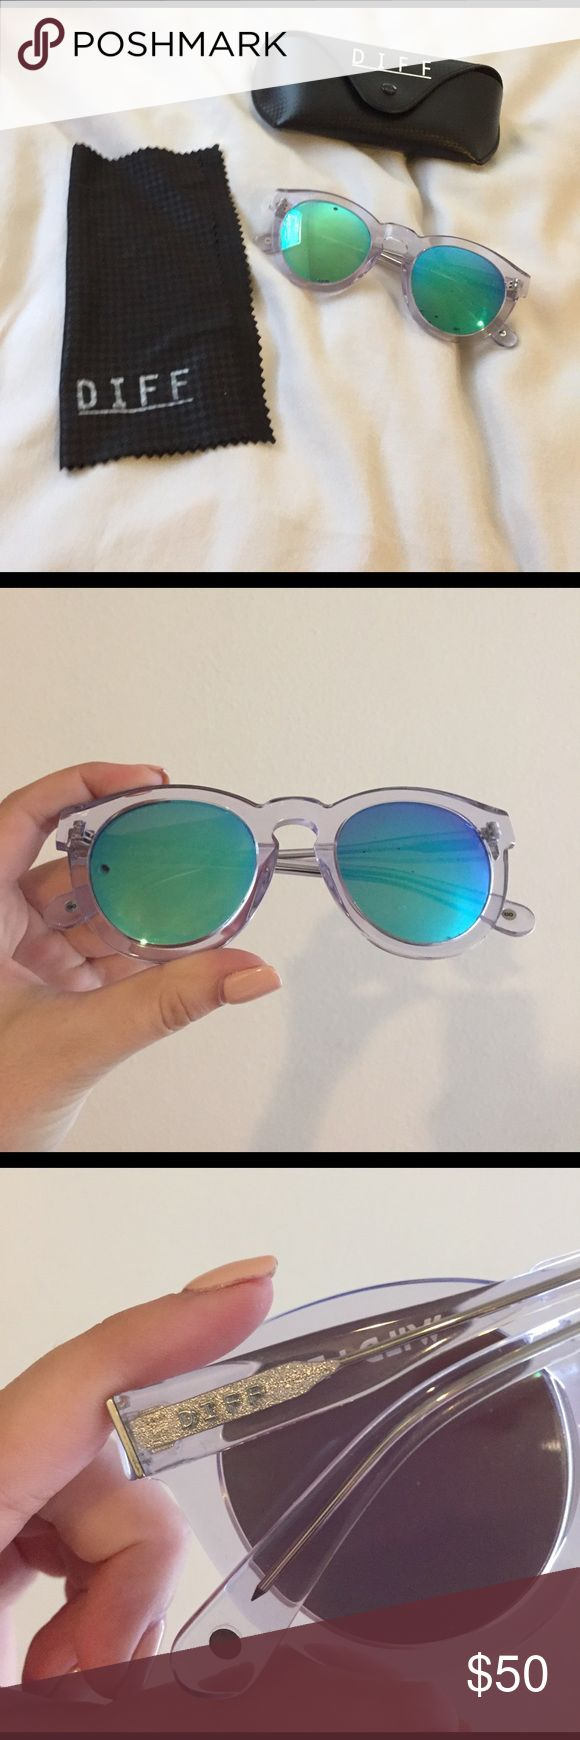 1 hour sale $45 will ship tomorrow! 🔥🔥 Sunglasses clear frame colored lenses DIFF eyewear Accessories Glasses